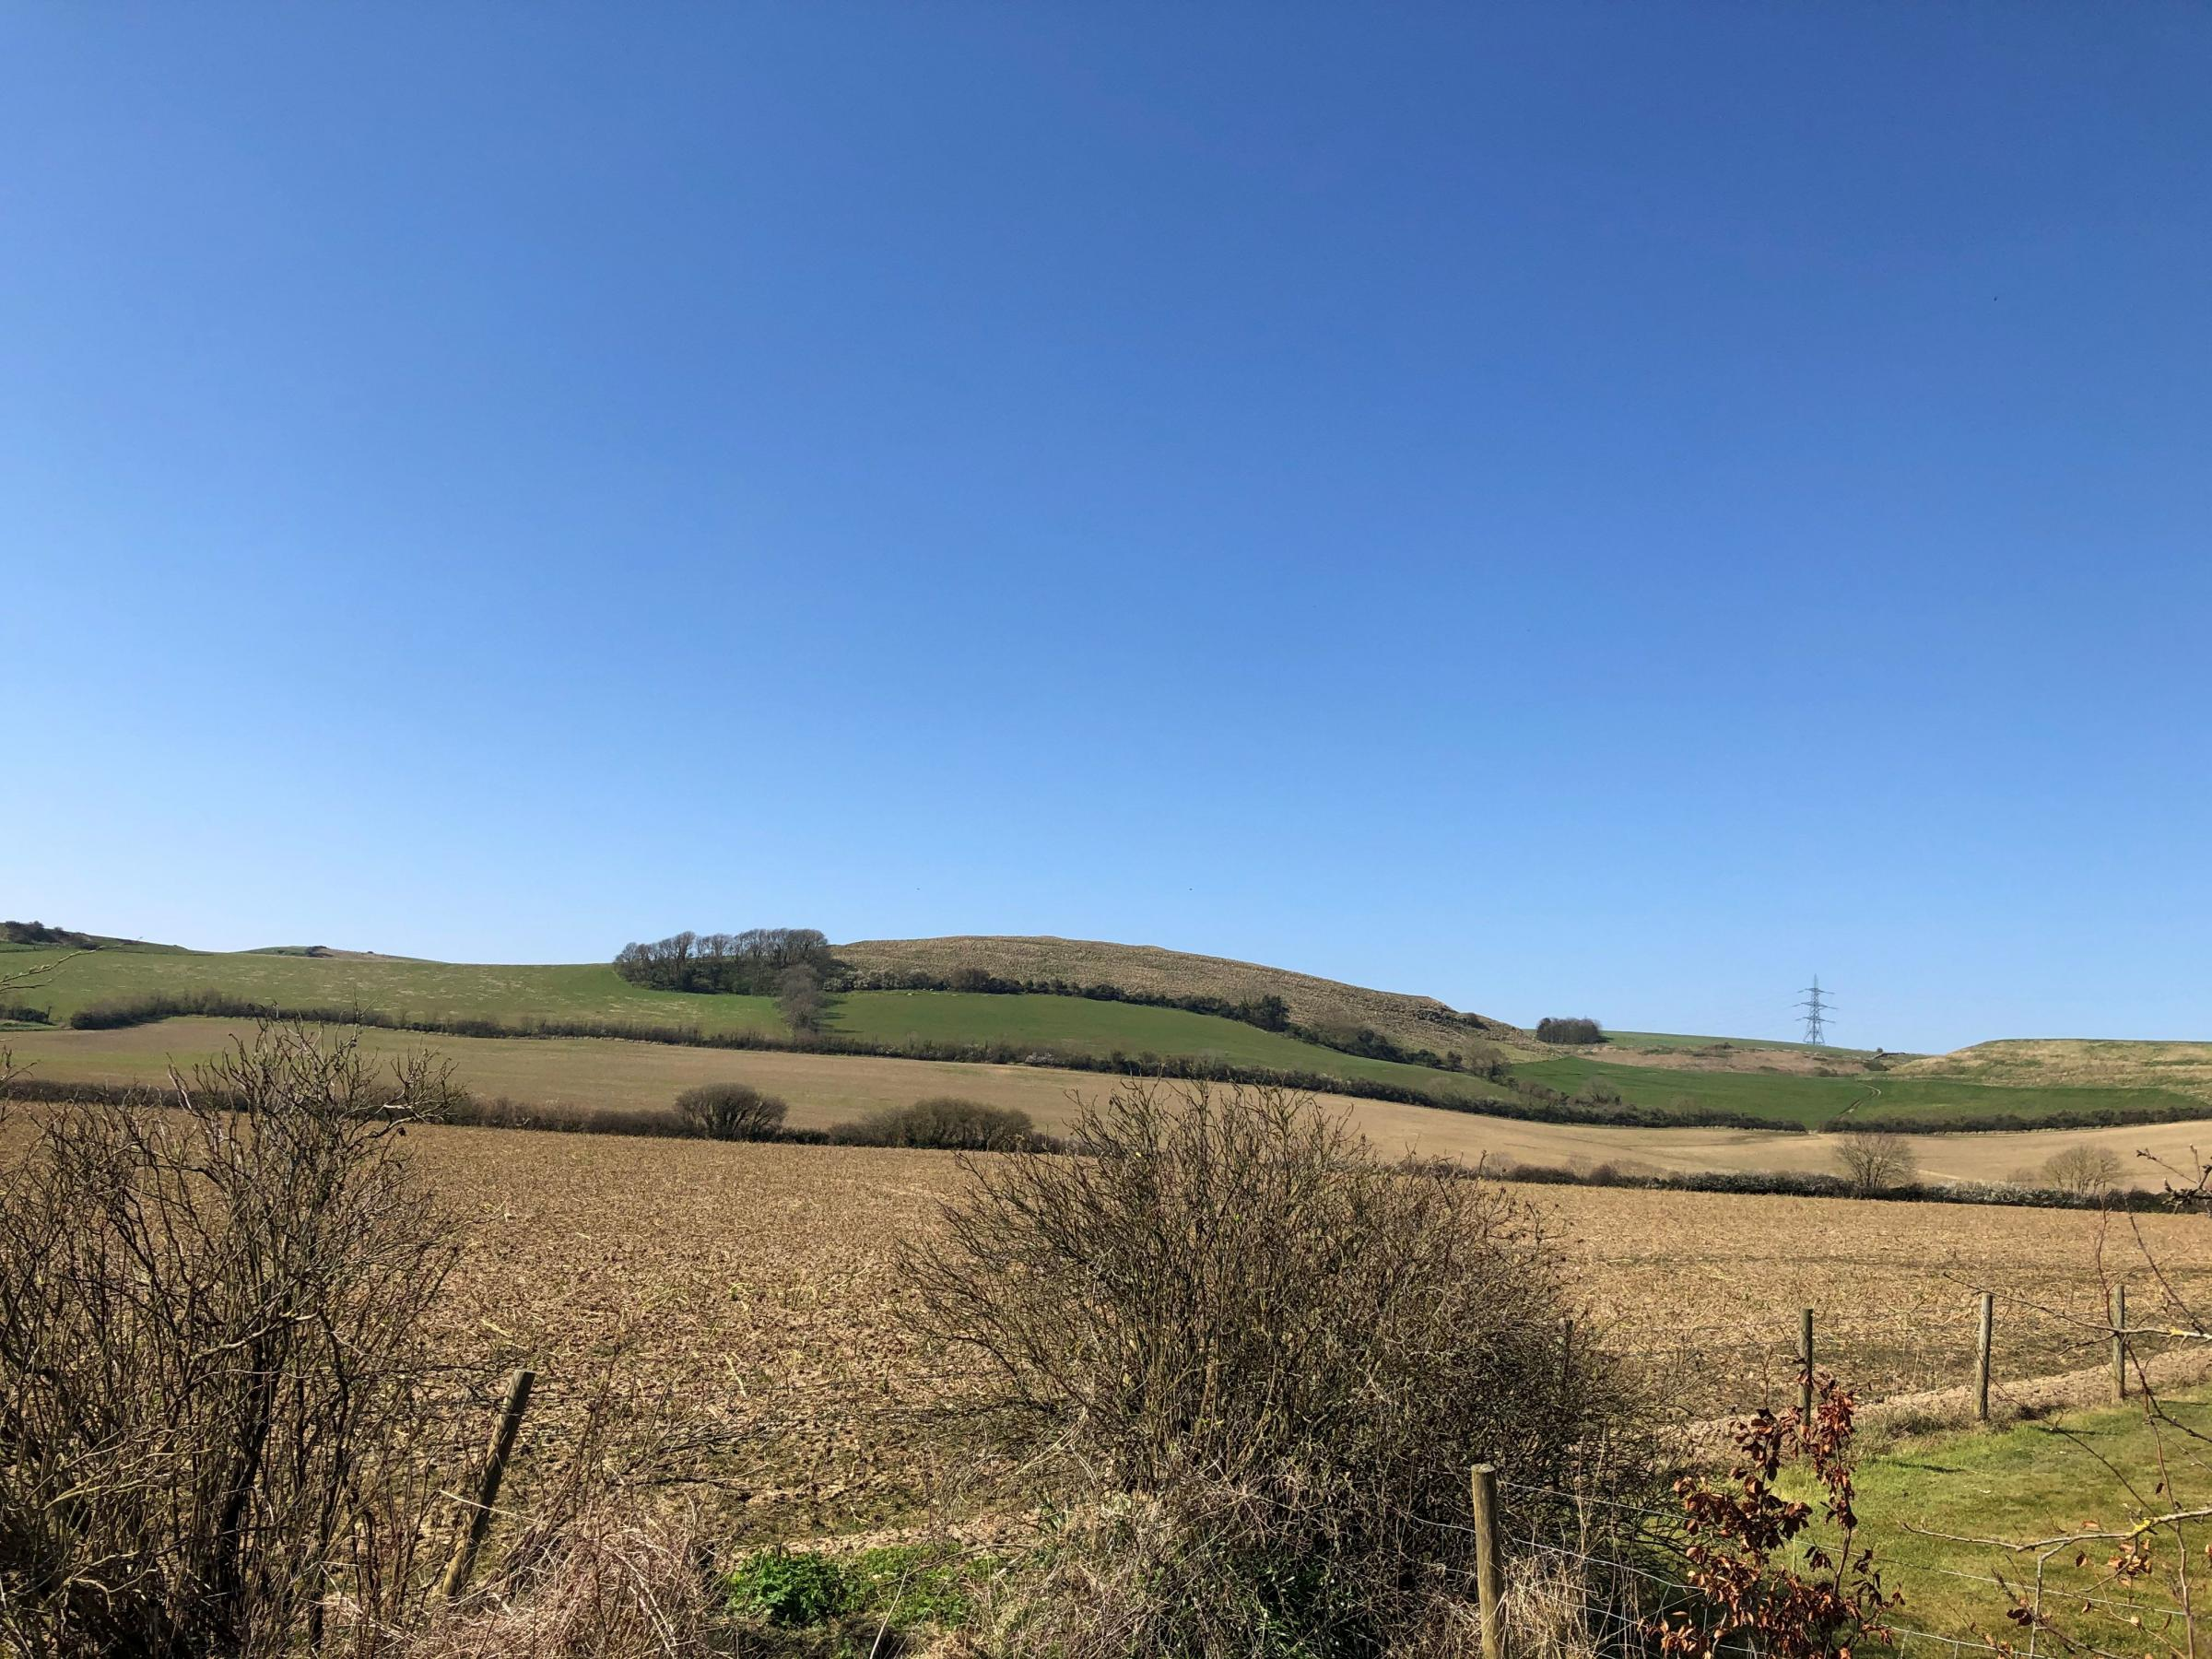 Don't be bored stuck at home on this beautiful day - send us your view!